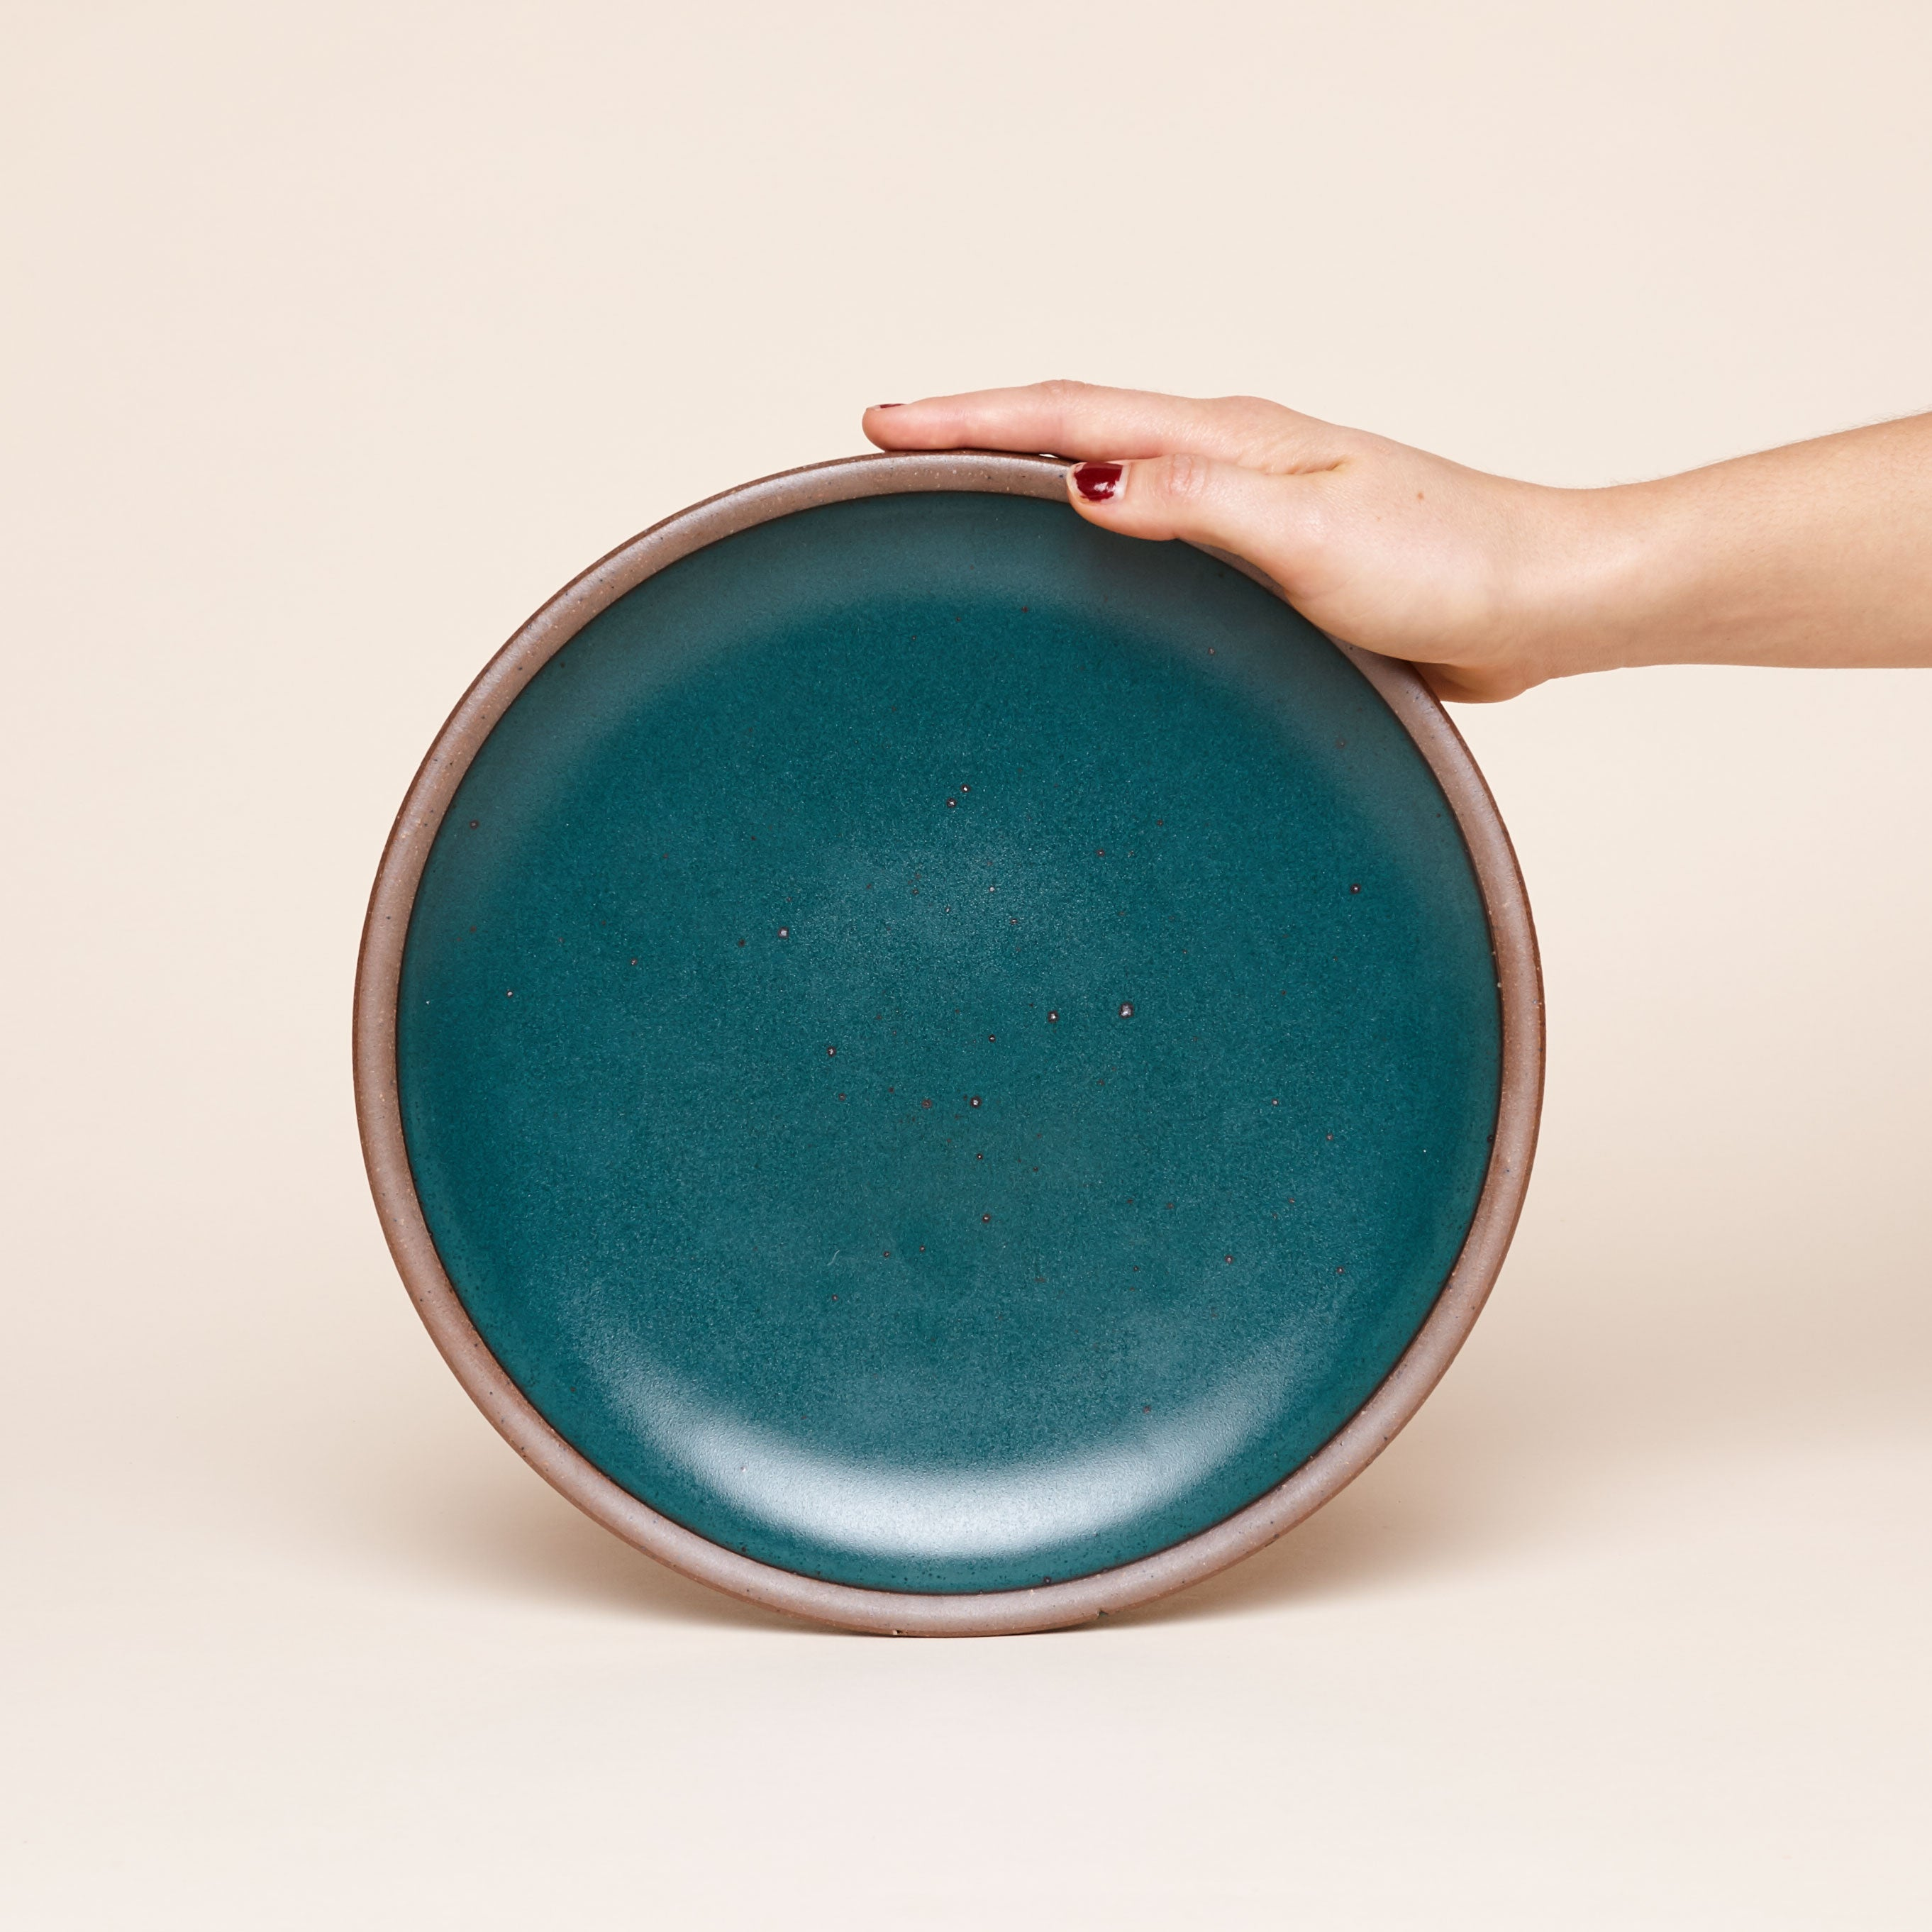 An East Fork Pottery Dinner plate in Night Swim, and inky dark teal.